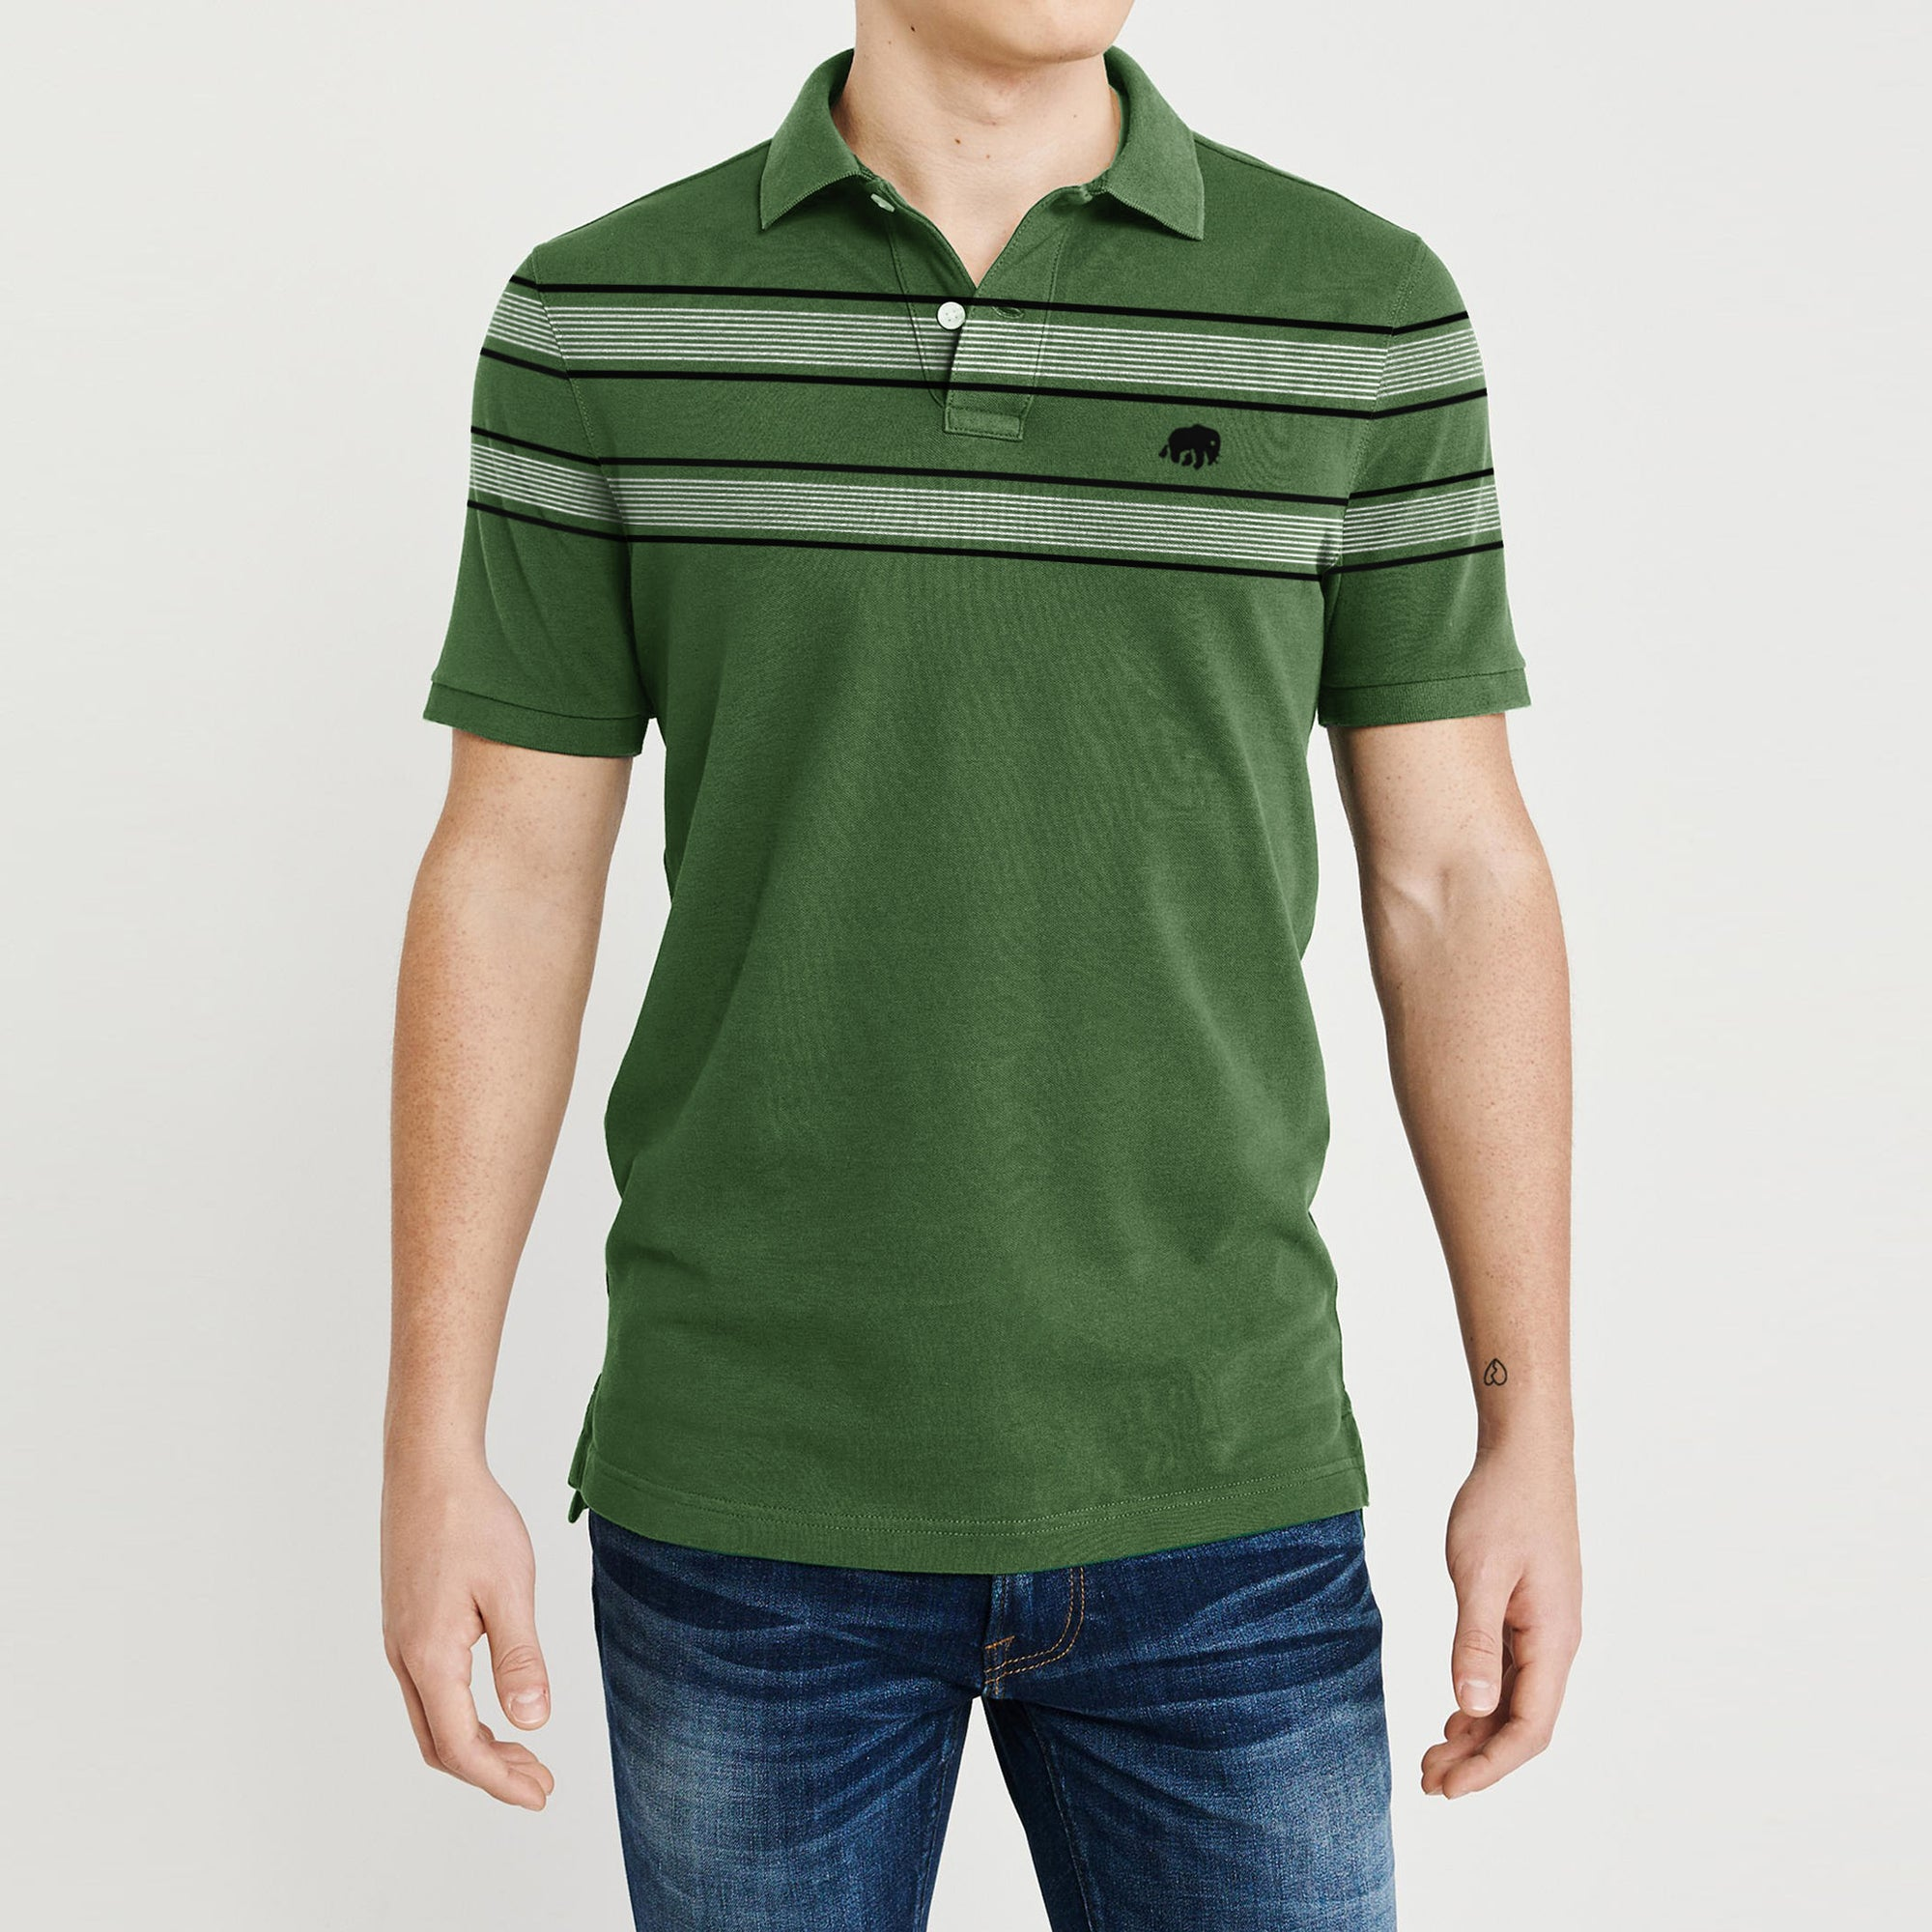 Banana Republic Short Sleeve P.Q Polo Shirt For Men-Green with Stripe-BE8415